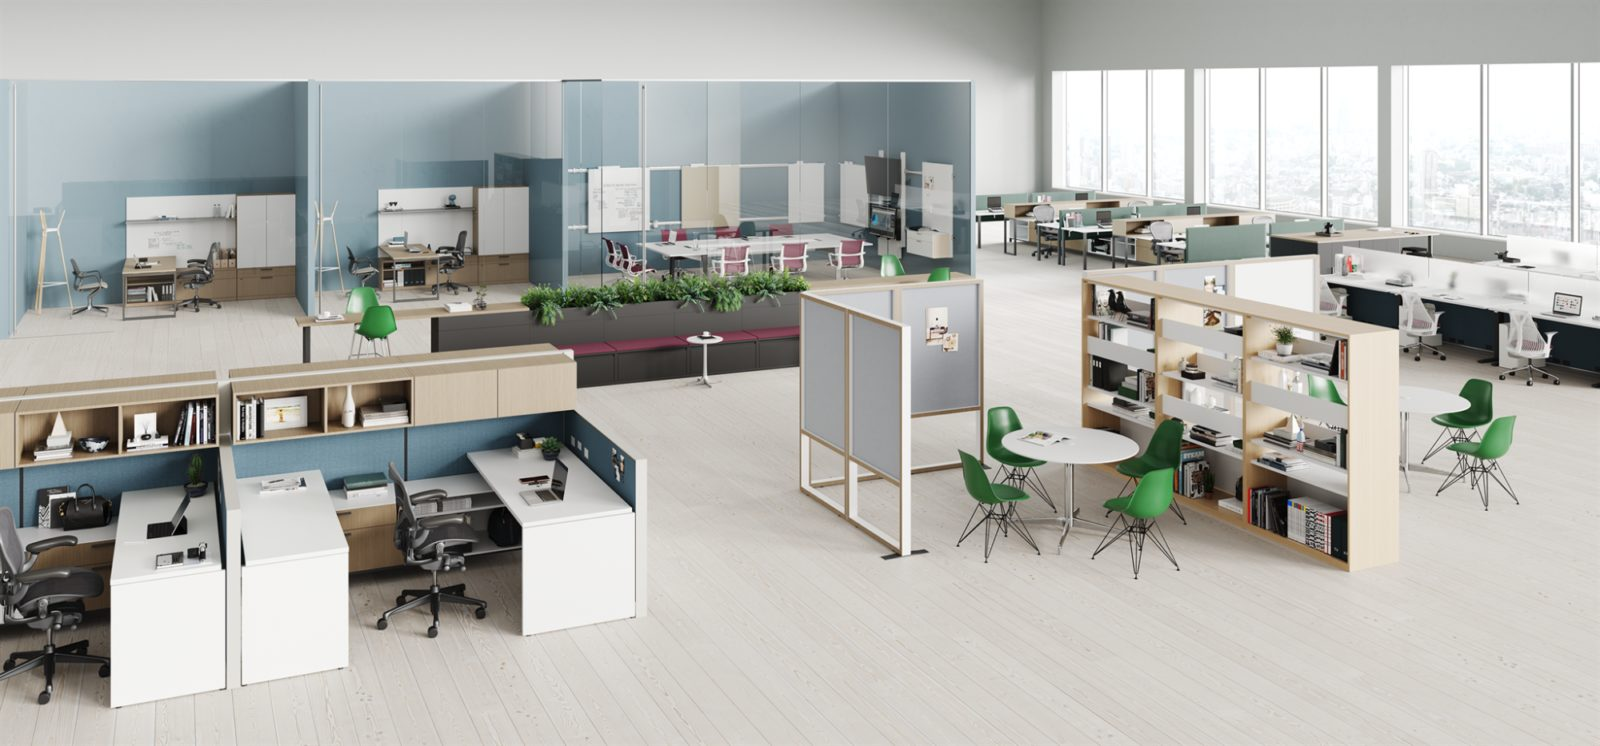 An image of a full floorplate of furniture including different work spaces like workstations, collaboration areas, and lounge areas.